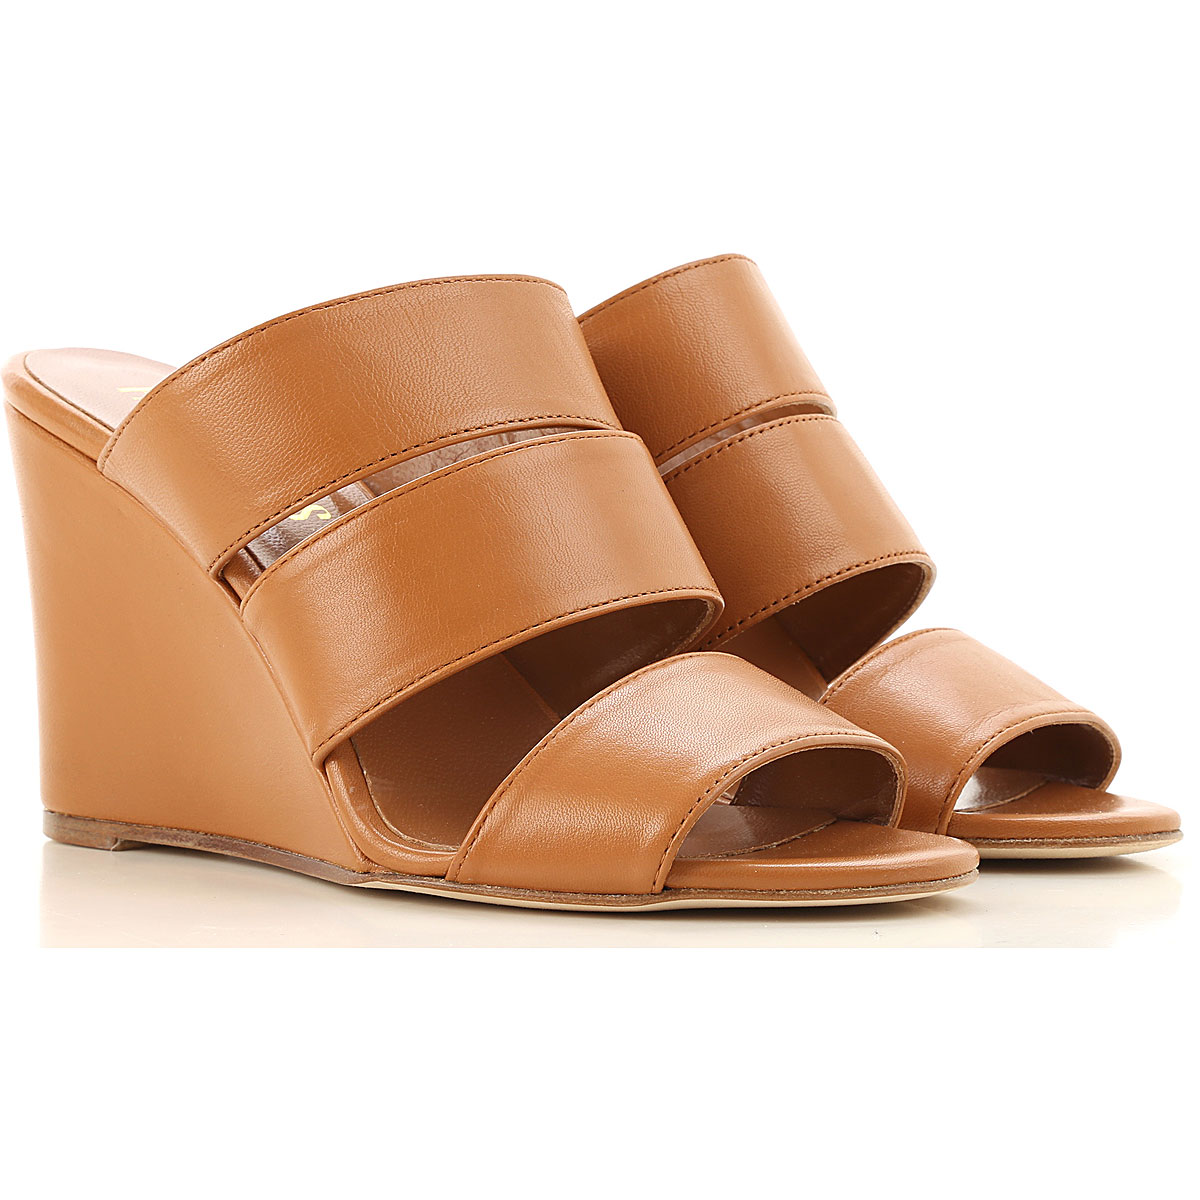 Paris Texas Sandals for Women On Sale in Outlet, Brown, Leather, 2019, 10 5 6